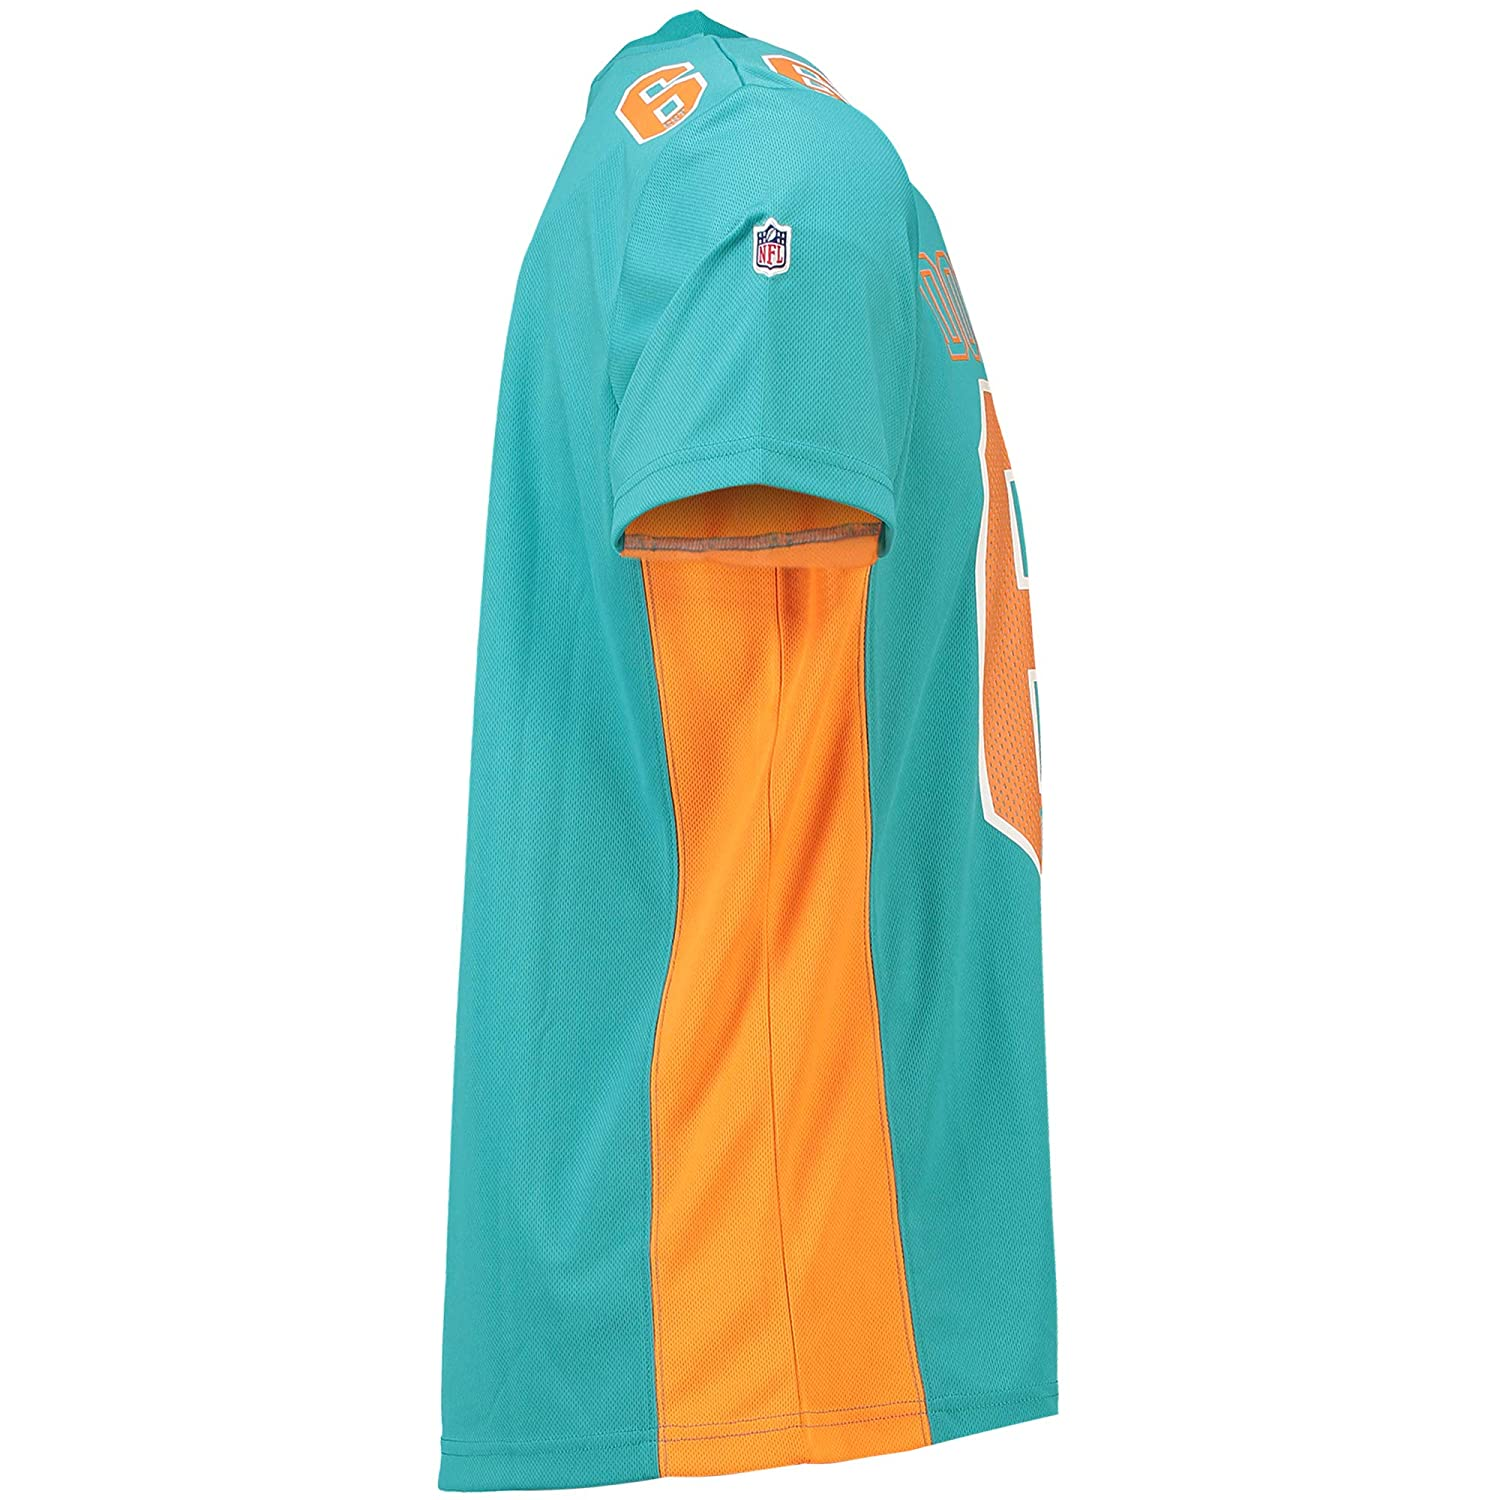 Majestic Athletic Miami Dolphins NFL Moro Poly Mesh Jersey Tee T-Shirt Trikot